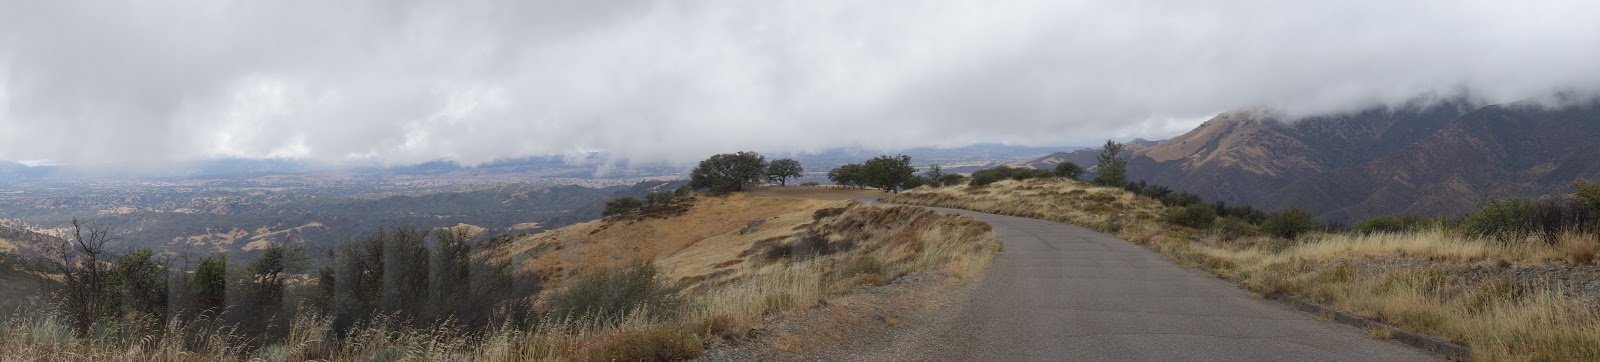 Climbing Figueroa Road by bike - Los Padres National Forest sign and road.